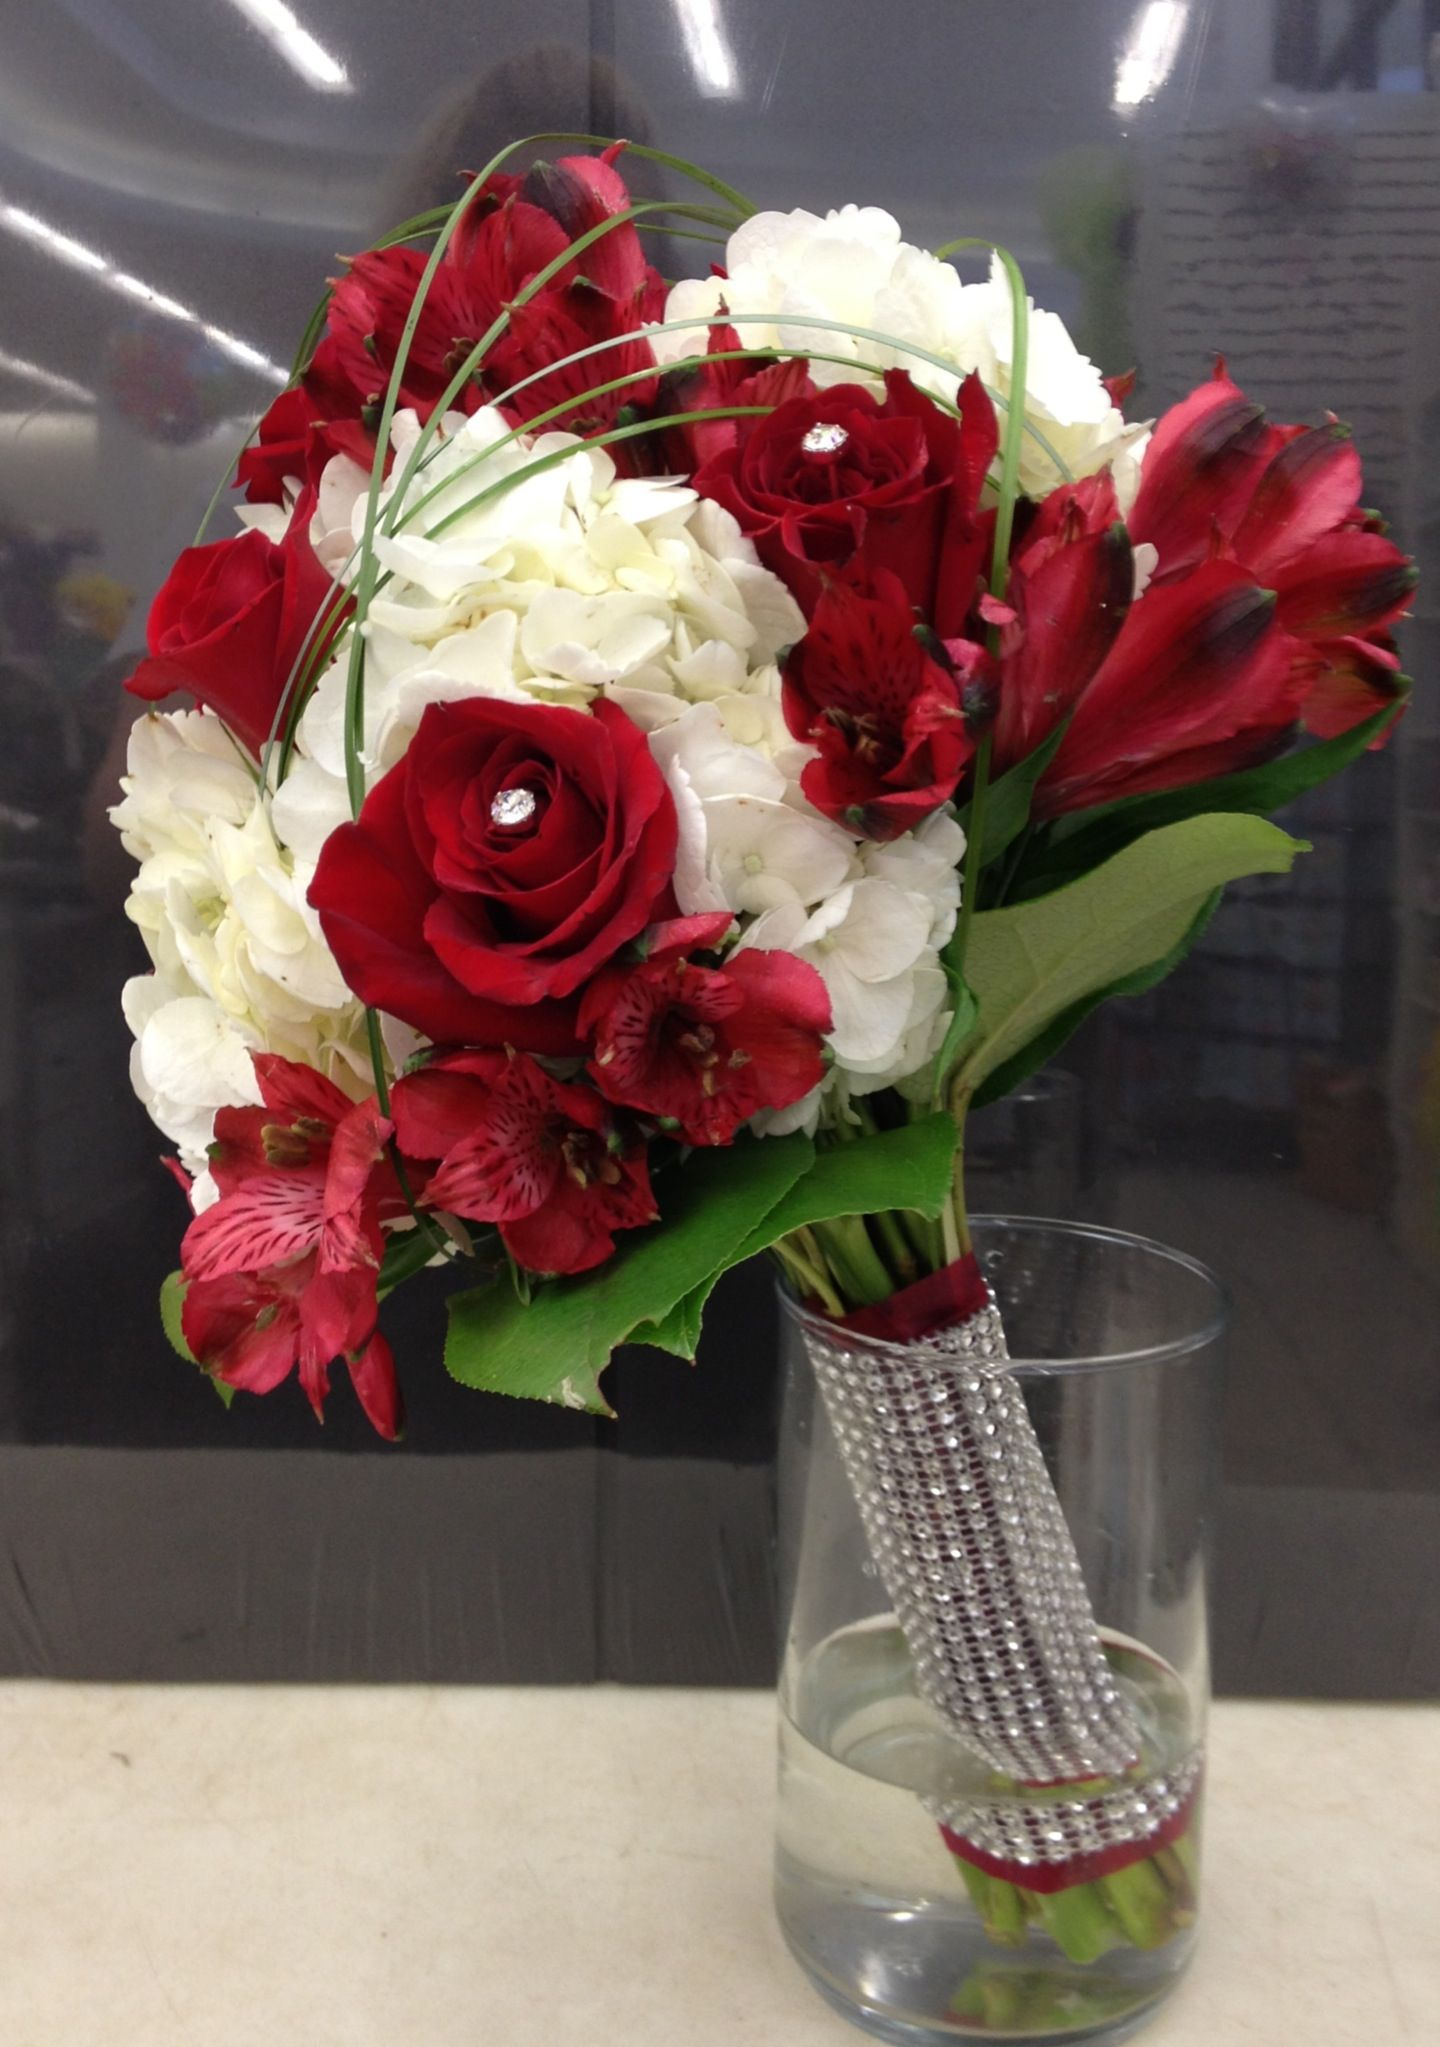 Red, White and Bling Bride Bq.  White hydrangea, red roses and red alstroemeria with bear grass loops and salal leaves around base wrapped in red satin and bling.